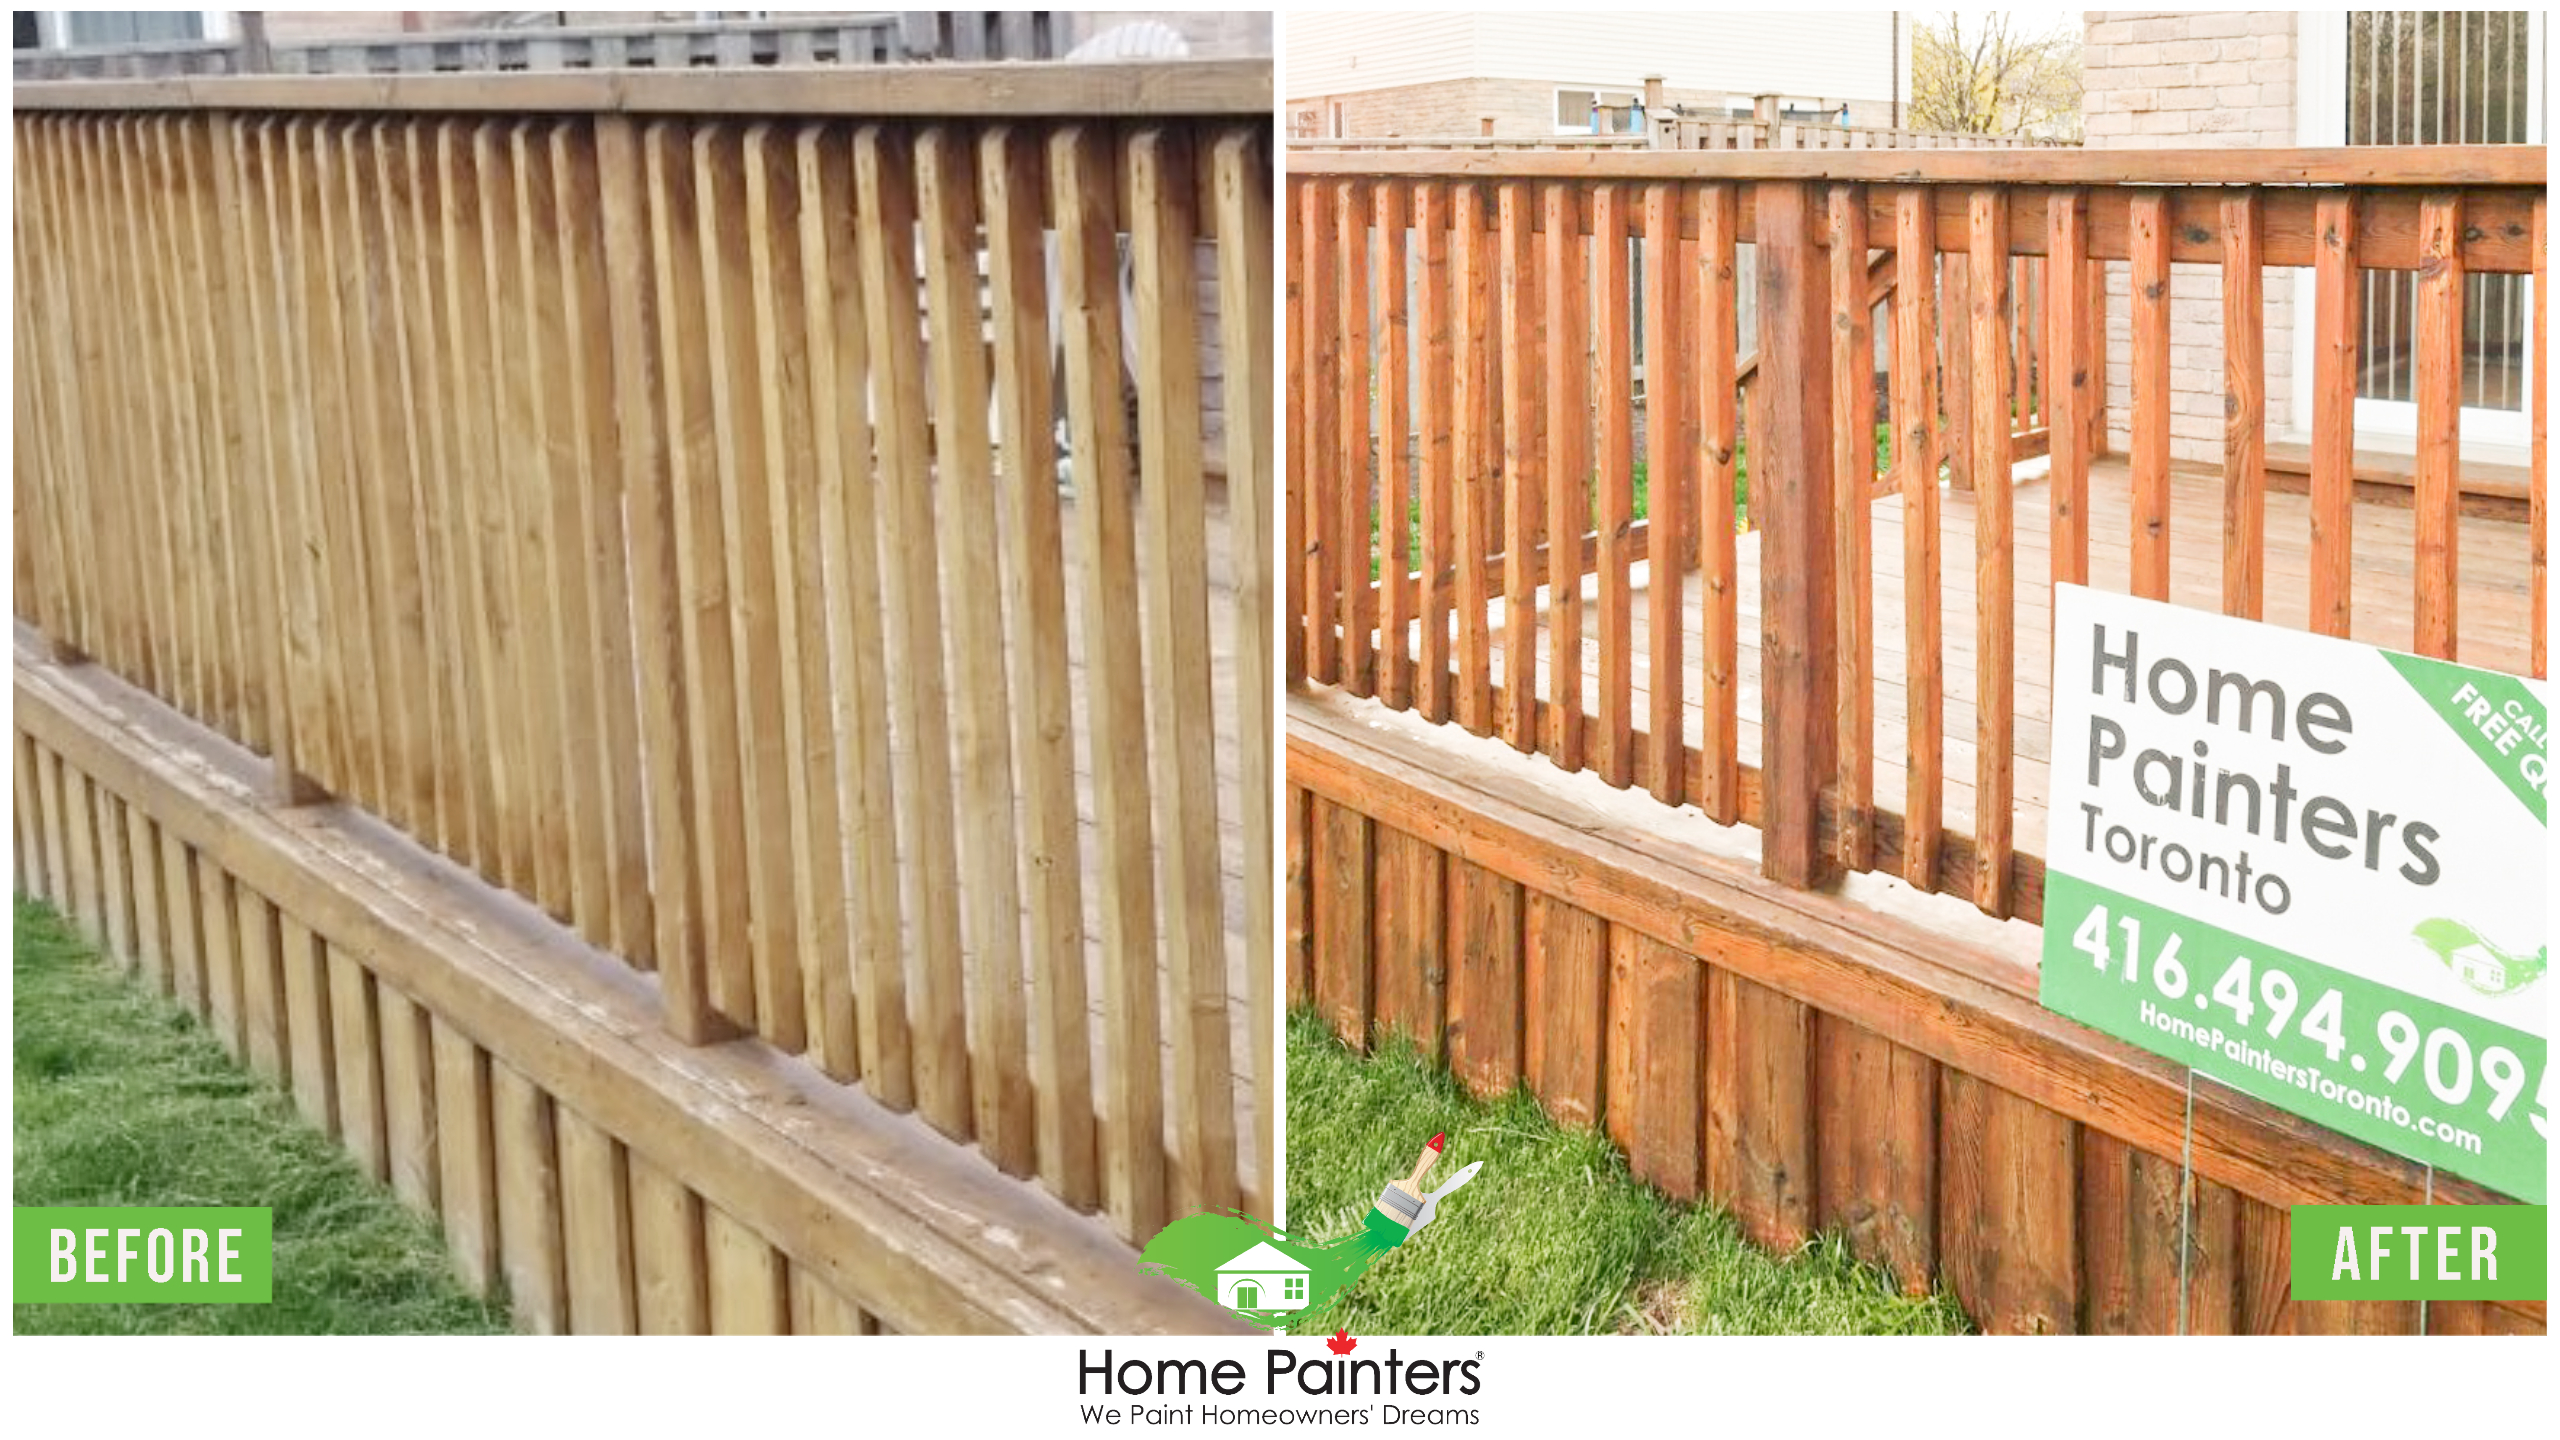 Transformation of exterior fence deck staining before and after by home painters toronto, outdoor painting, exterior painting, house painters toronto